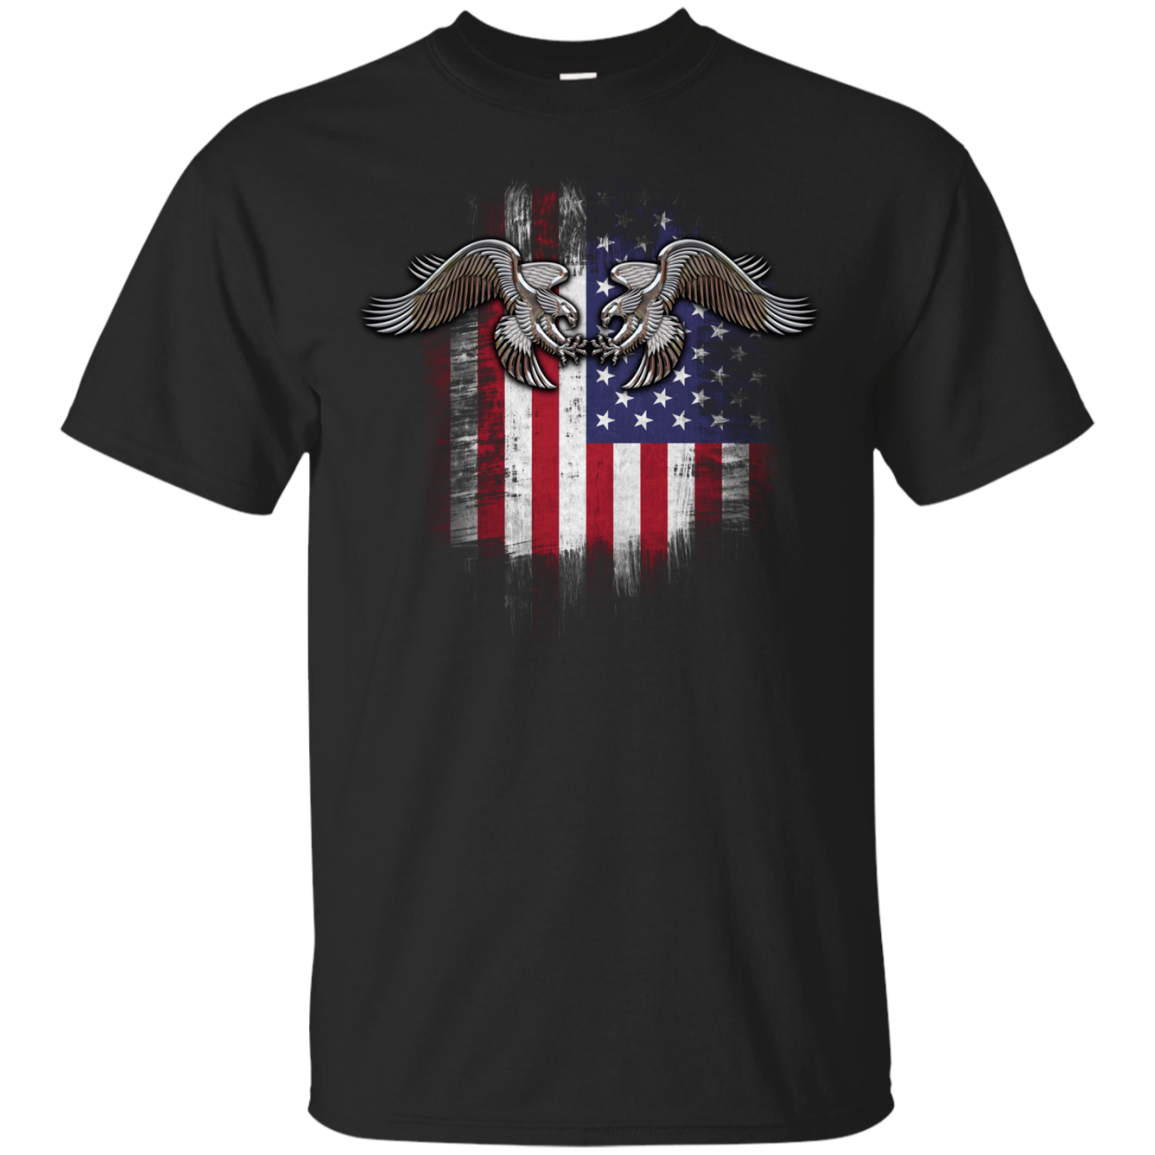 American twin eagles T-Shirts Funny Sports Shirt Football Tee